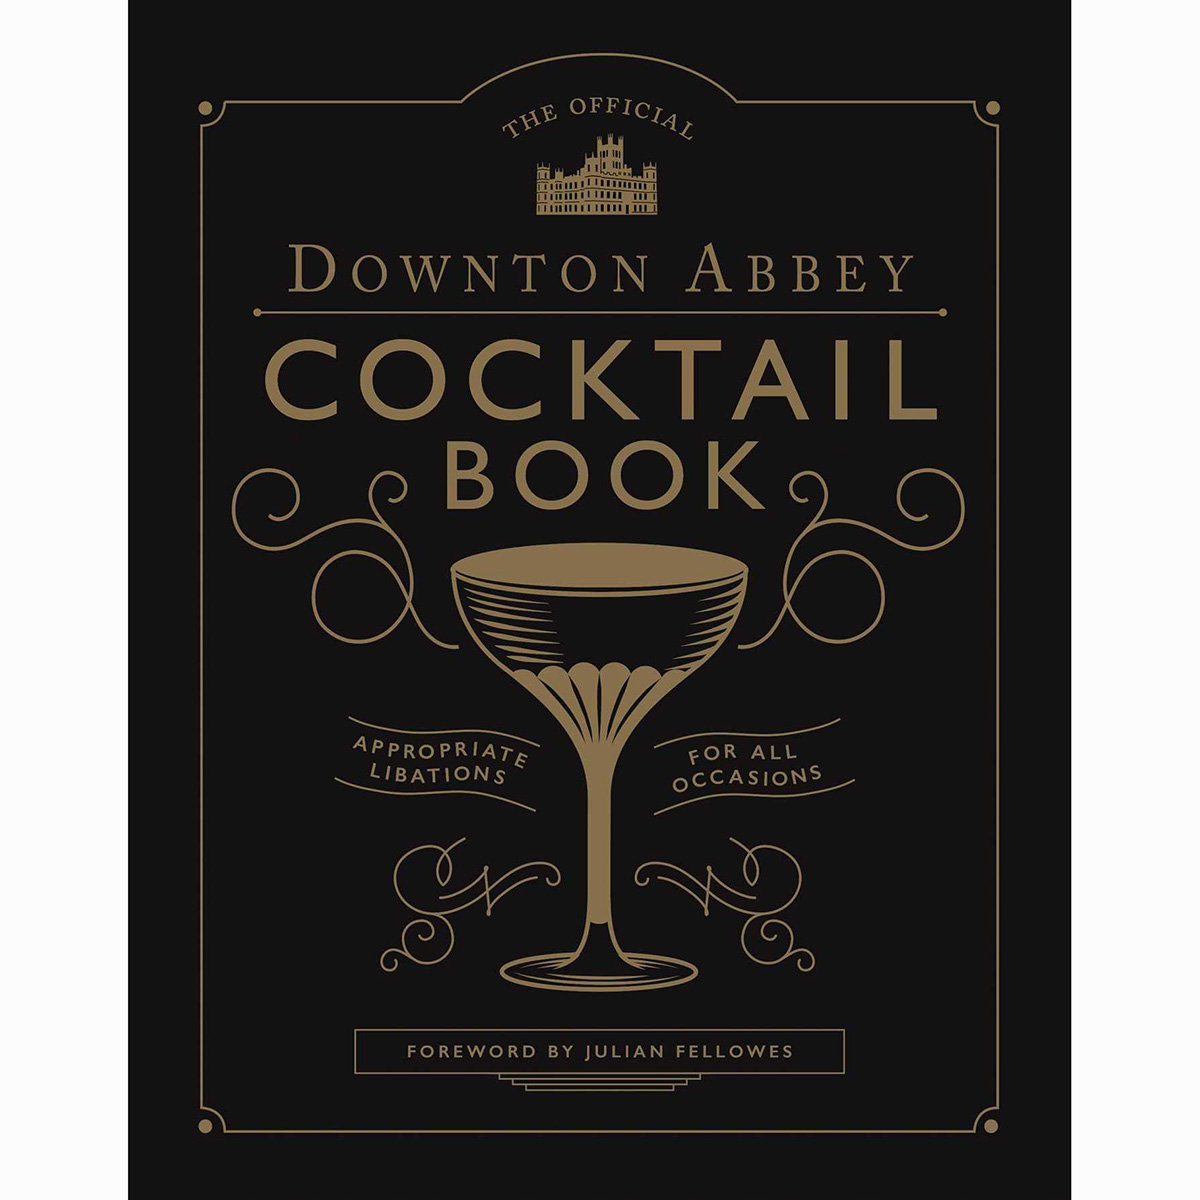 Downtown Abbey Cocktail Book